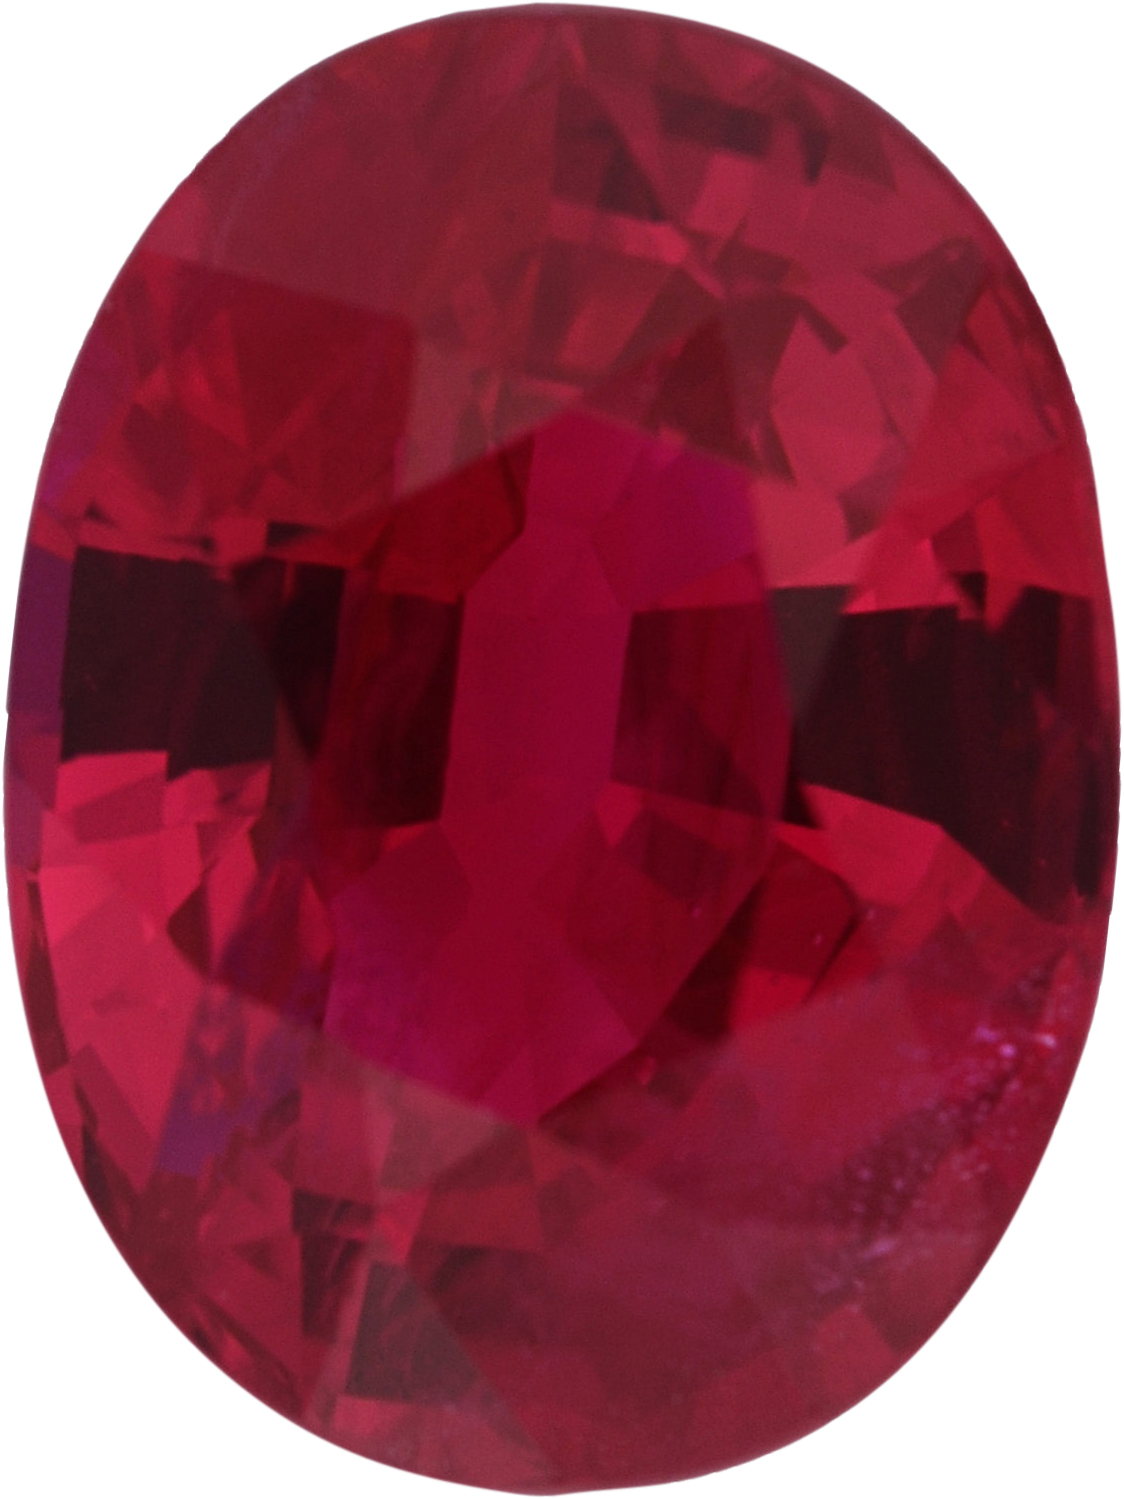 Exceptional Loose Ruby Gem in Oval Cut, Deep  Red Color, 7.61 x 5.75 mm, 1.53 carats